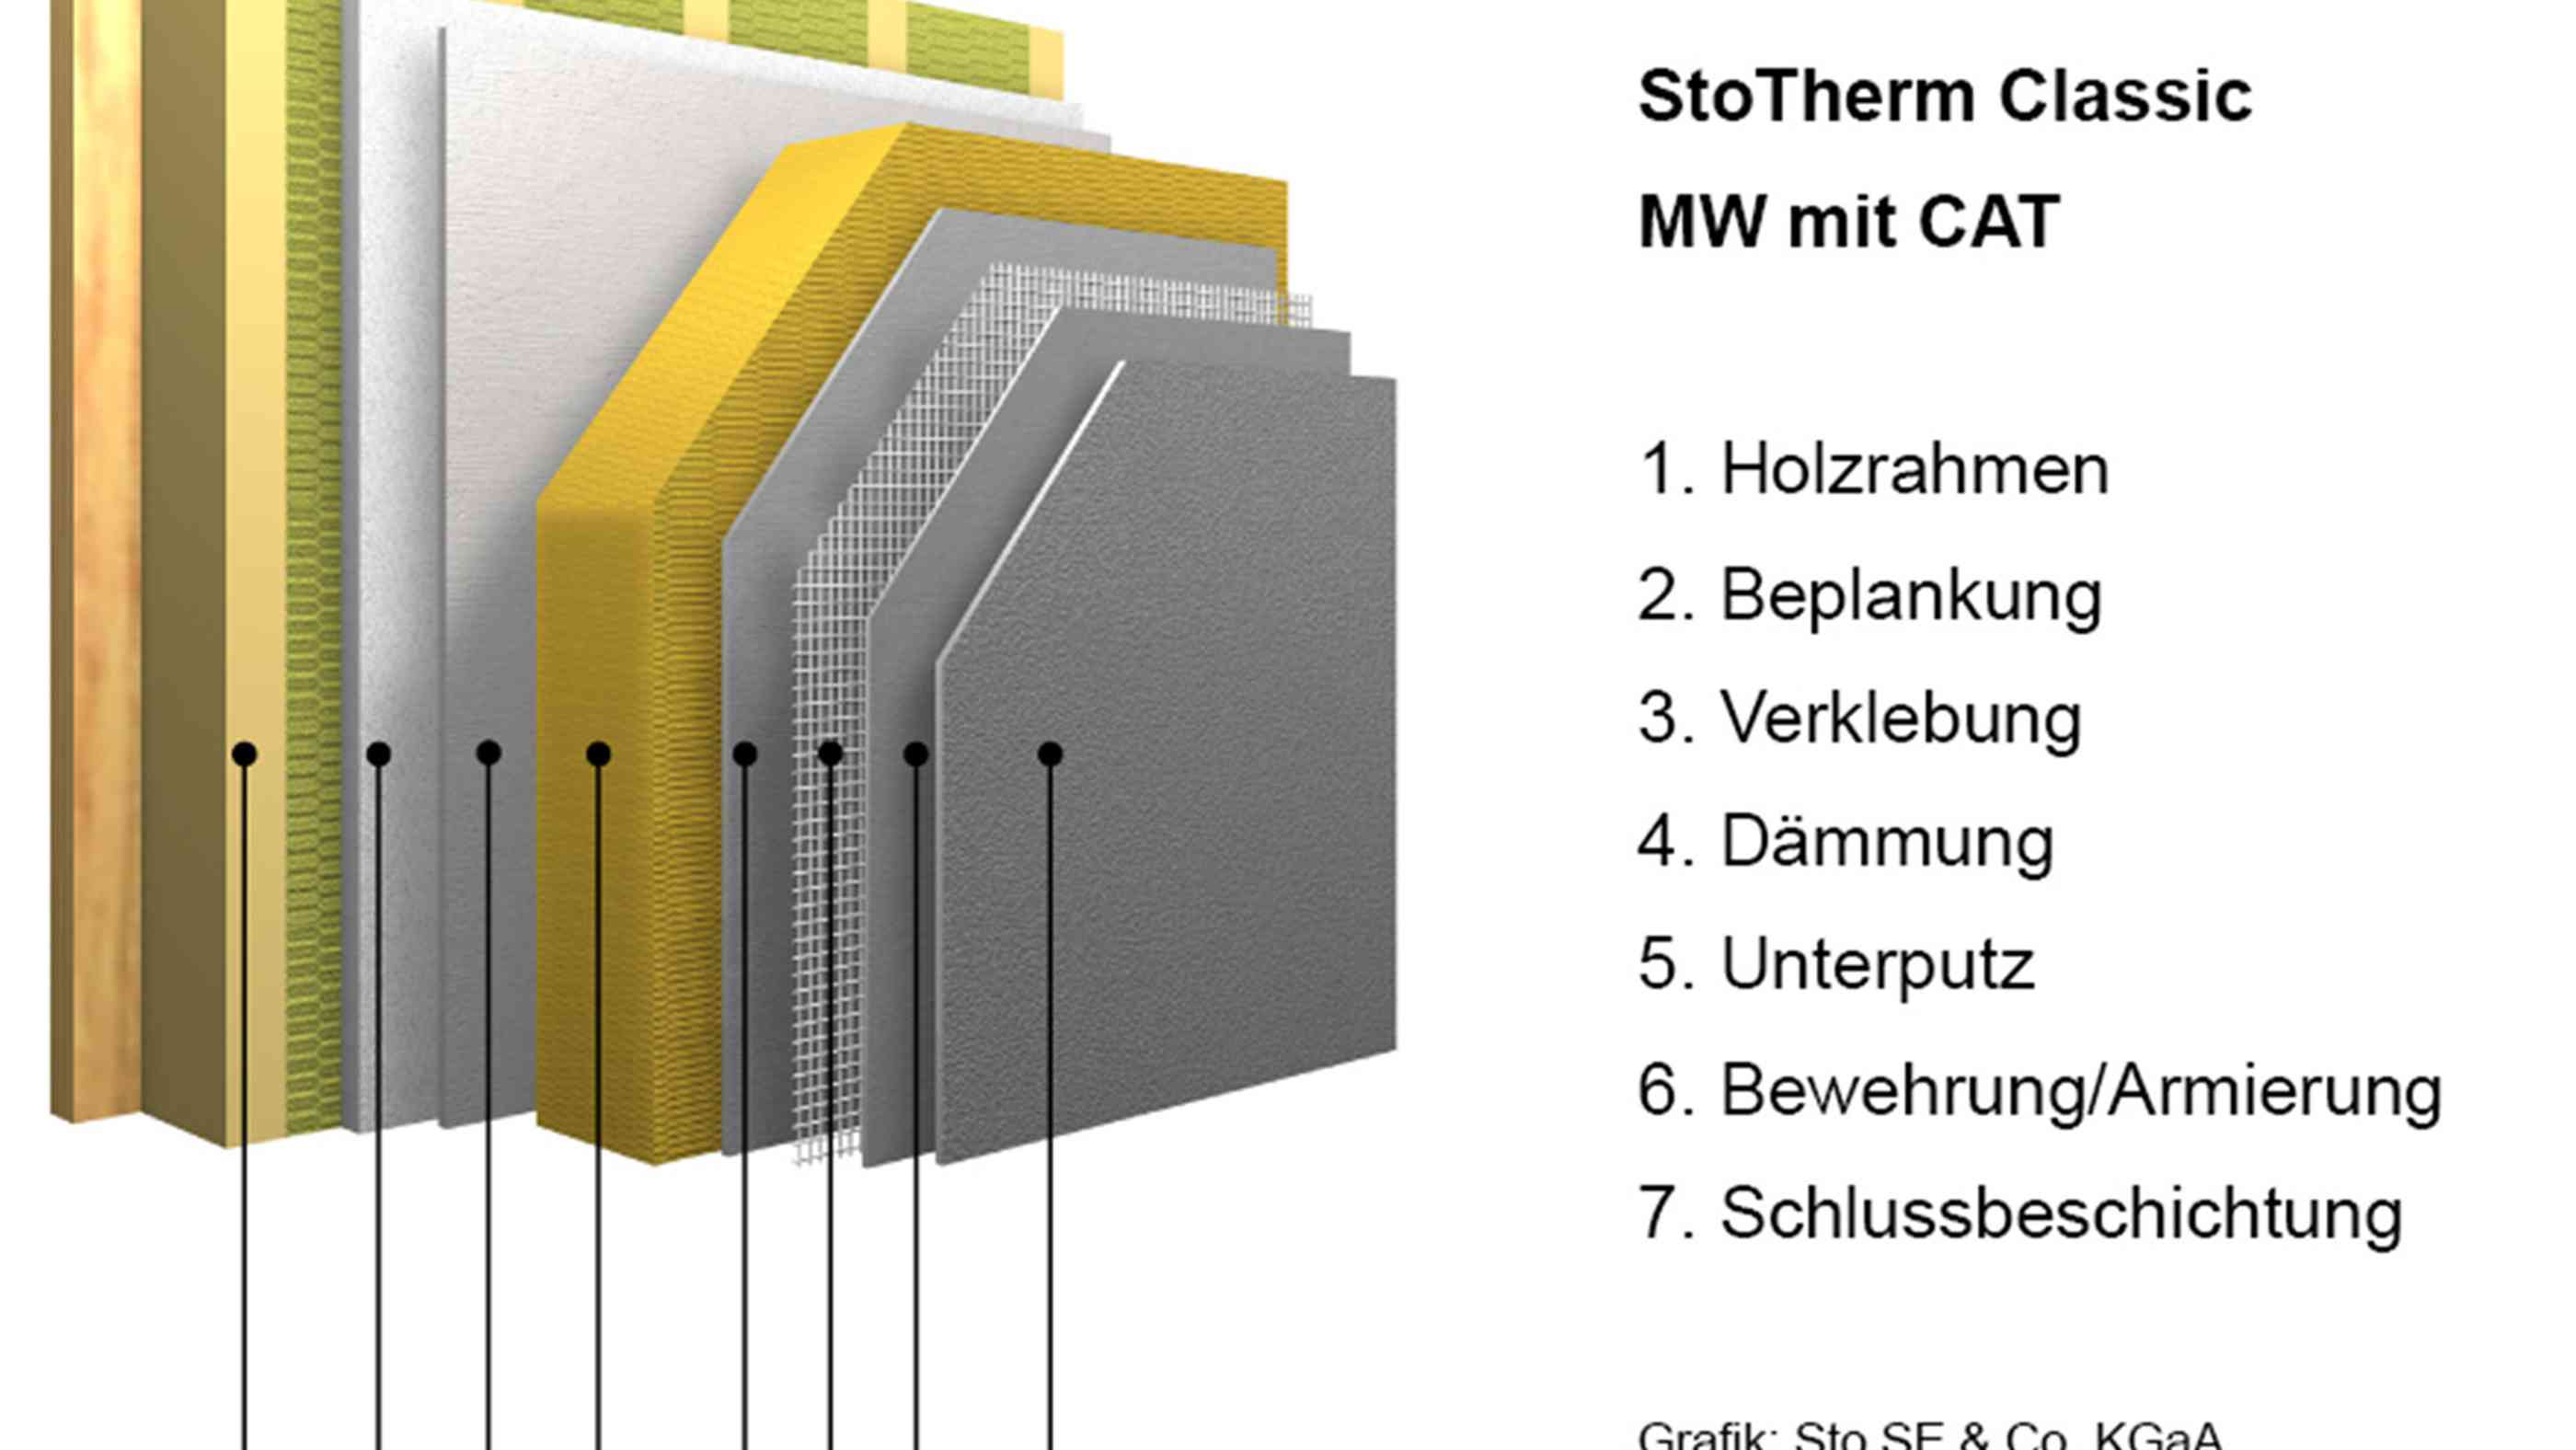 Systemaufbau StoTherm Classic MW mit CAT.